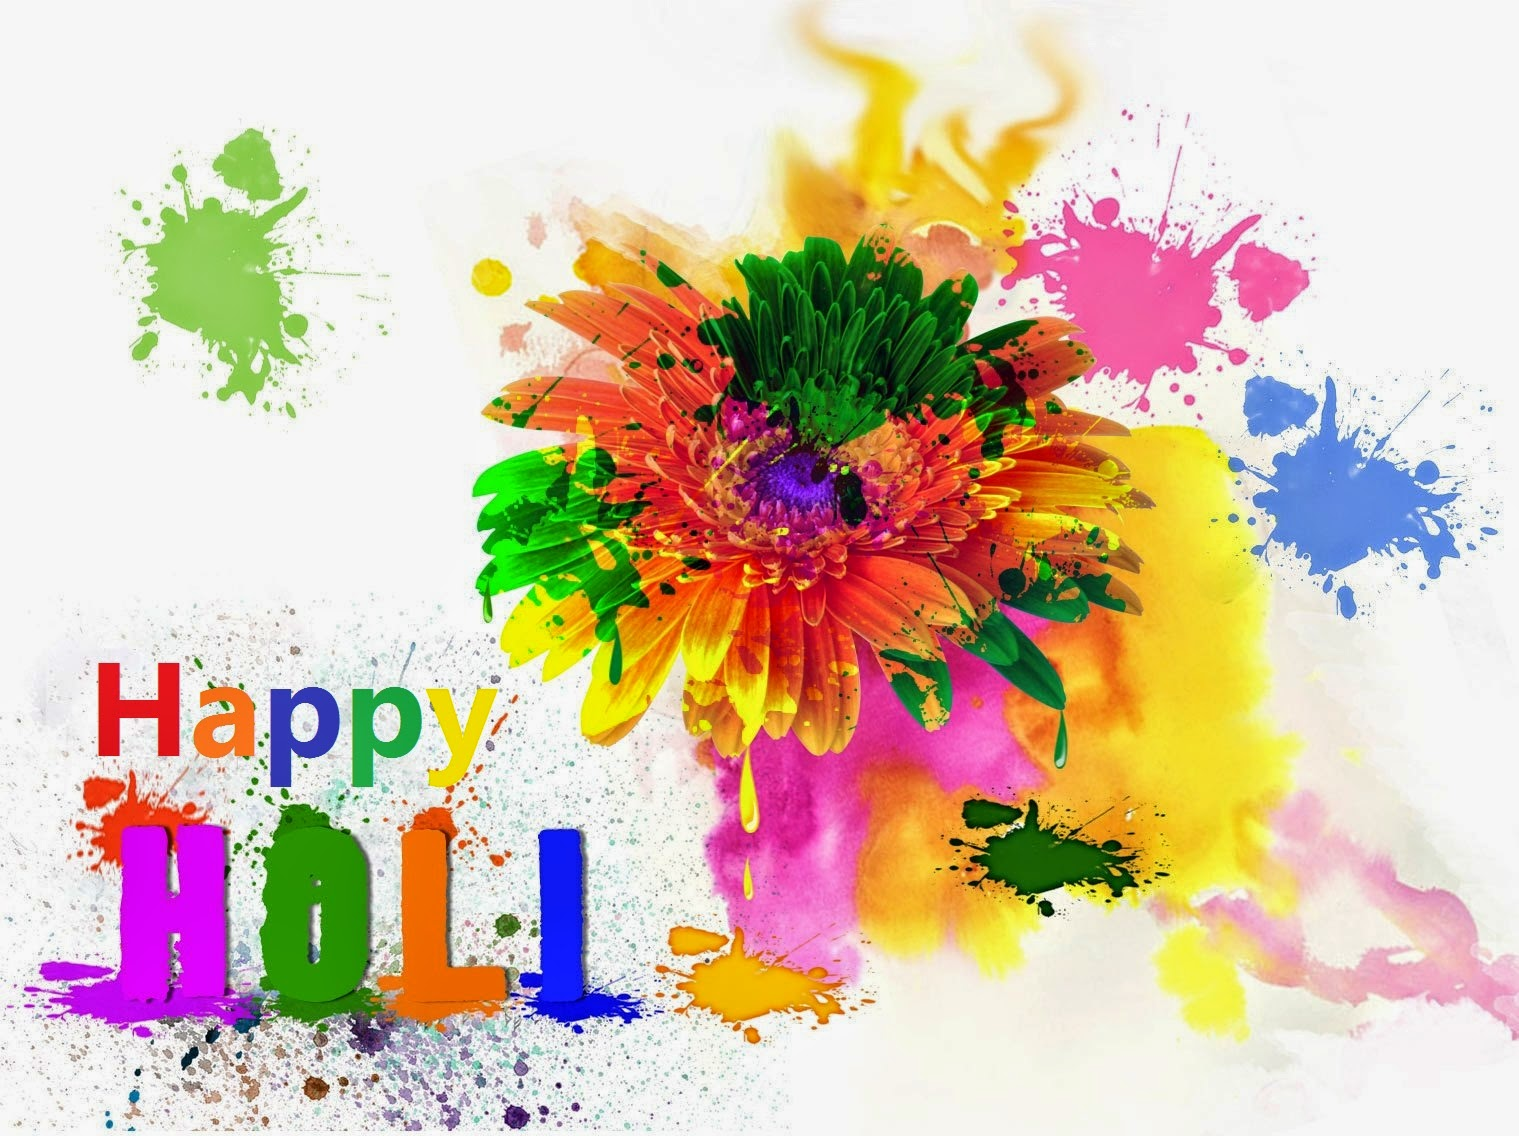 essay writing letter writing all types of sms happy holi  happy holi 2015 sms messages latest collection happy holi 2015 wishes